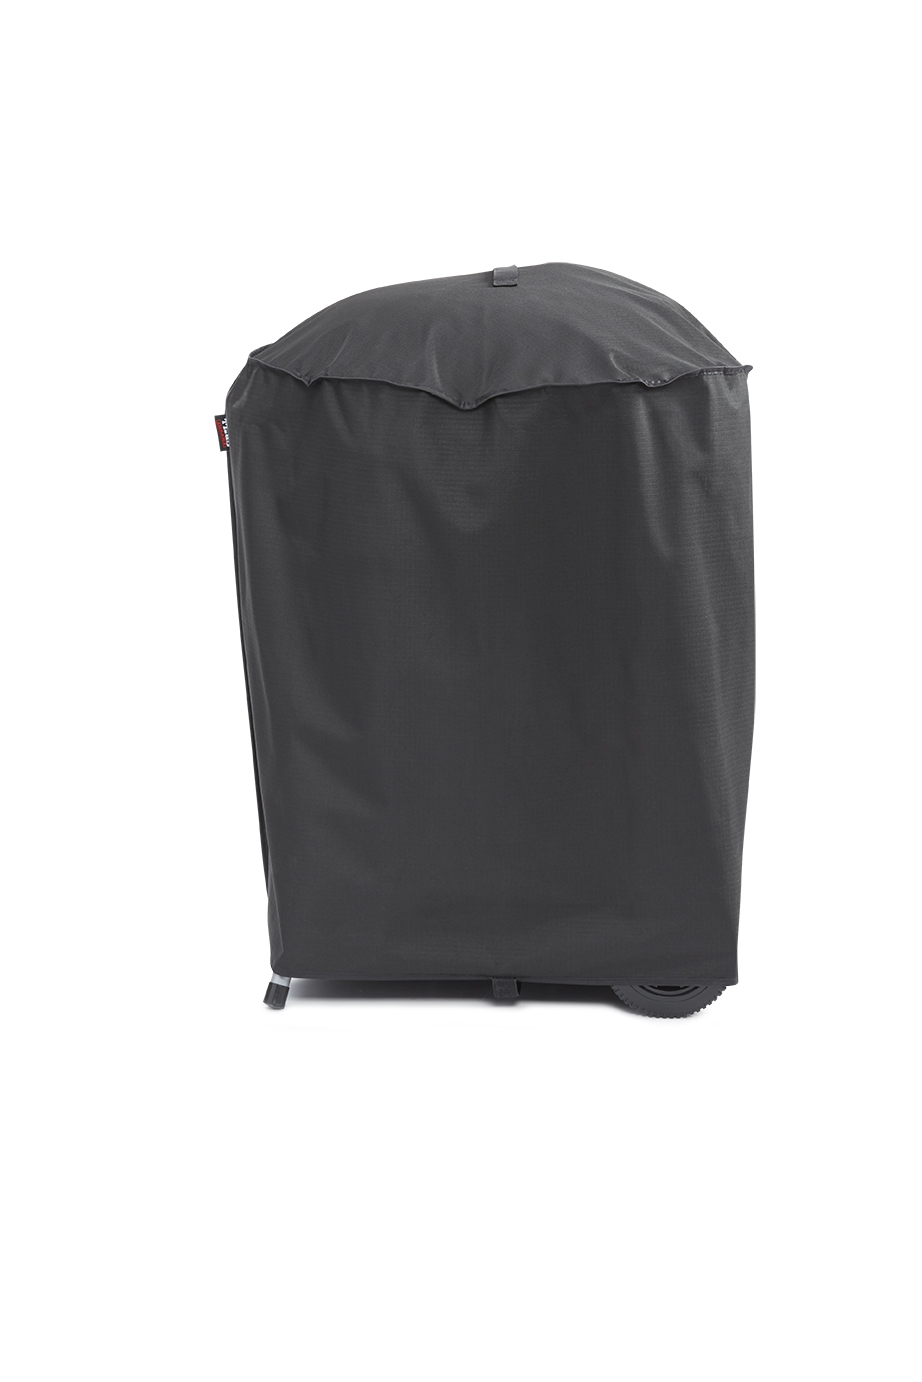 Expert Grill Heavy Duty Kettle Grill Cover by IMPORT-GLORYMATE INTERNATIONAL